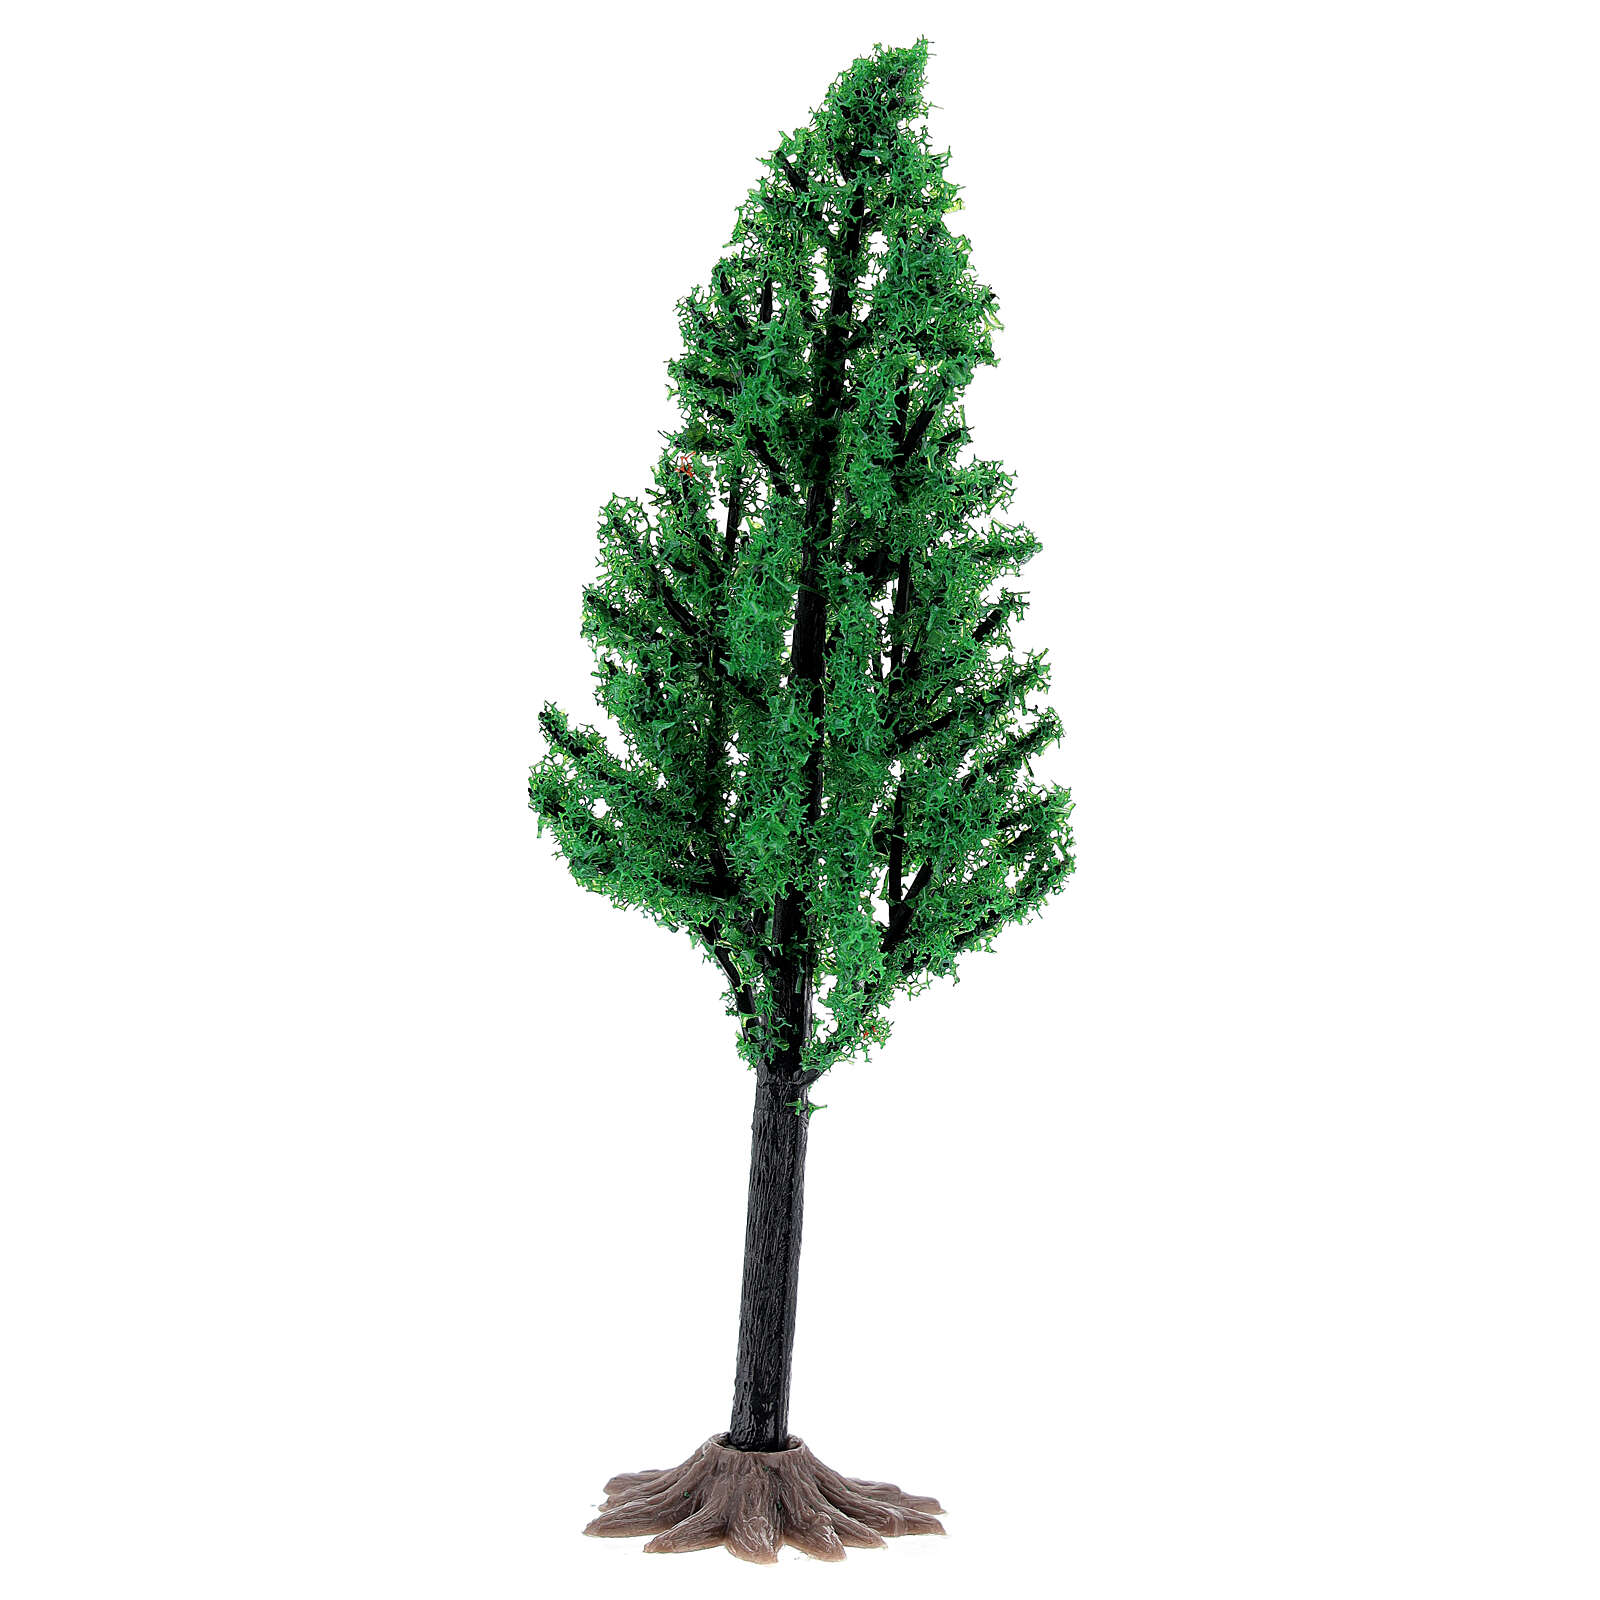 Tree real height 14 cm for Nativity Scene with 6-8 cm figurines 4